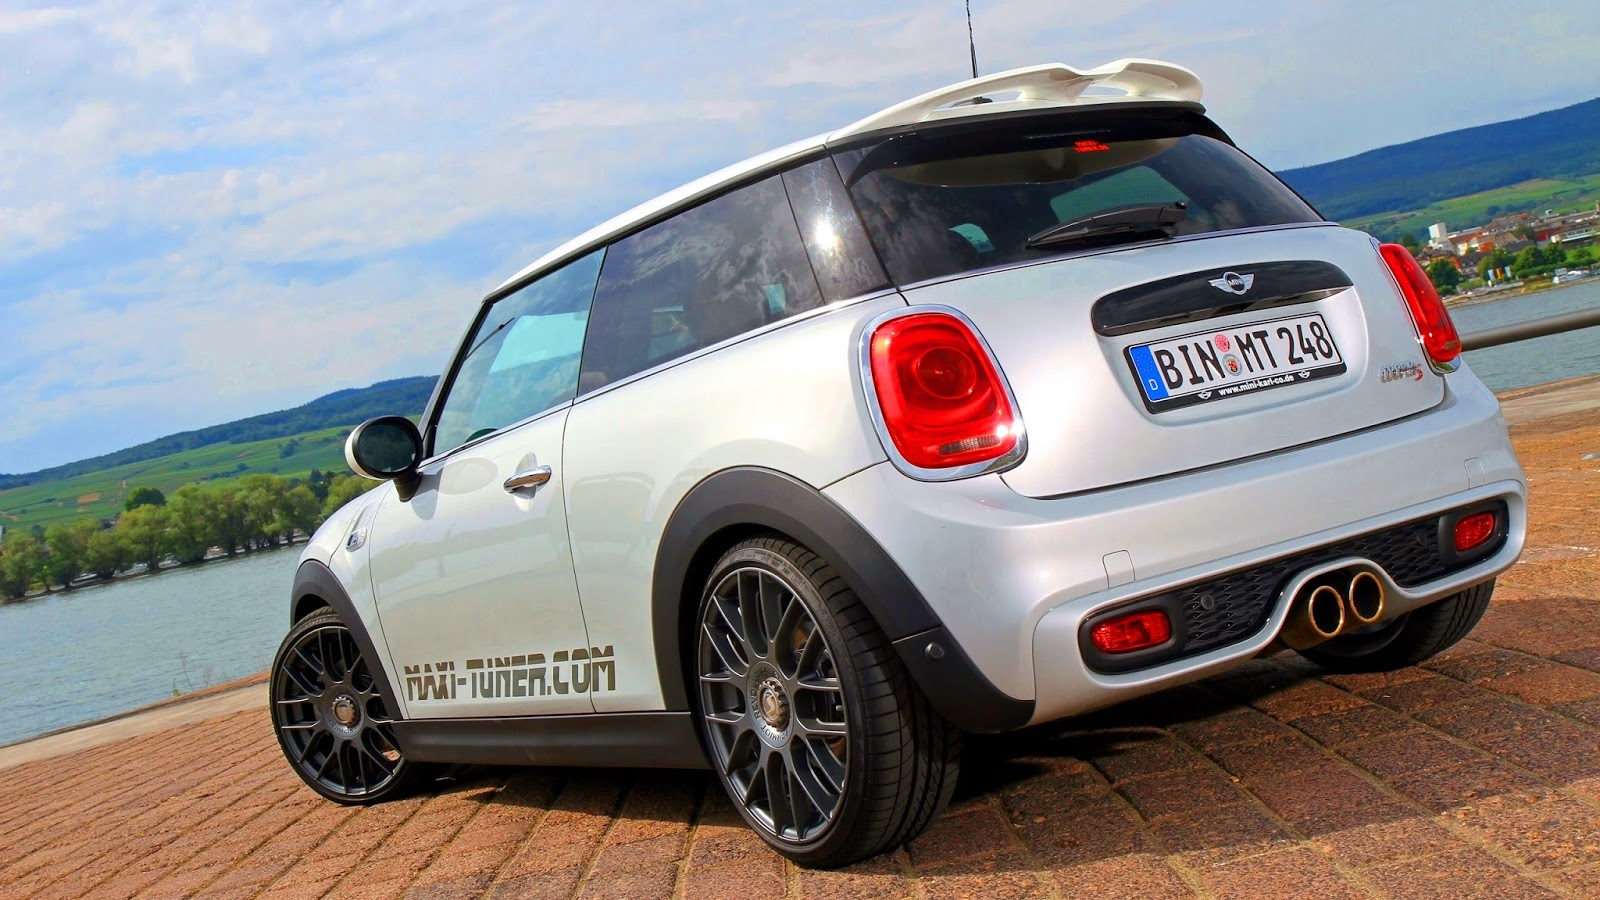 maxi tuner mini cooper s f56 2014 aro 18 2 0 turbo 220 cv. Black Bedroom Furniture Sets. Home Design Ideas